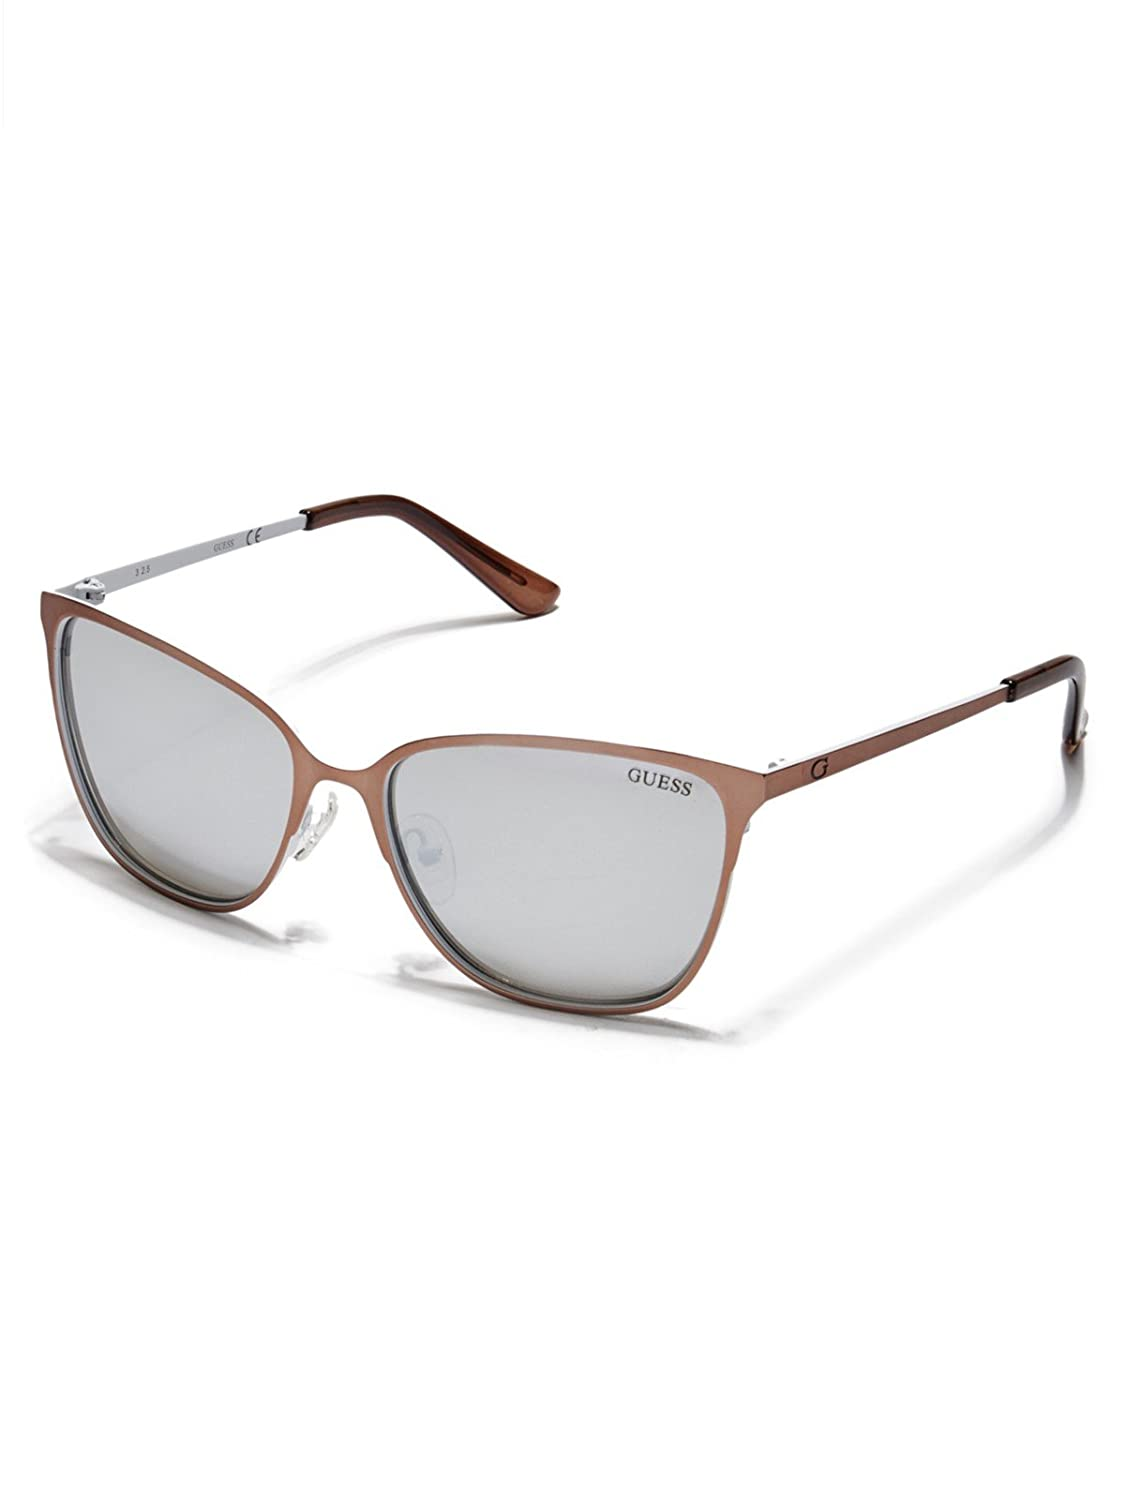 GUESS Women's Retro Metal Sunglasses